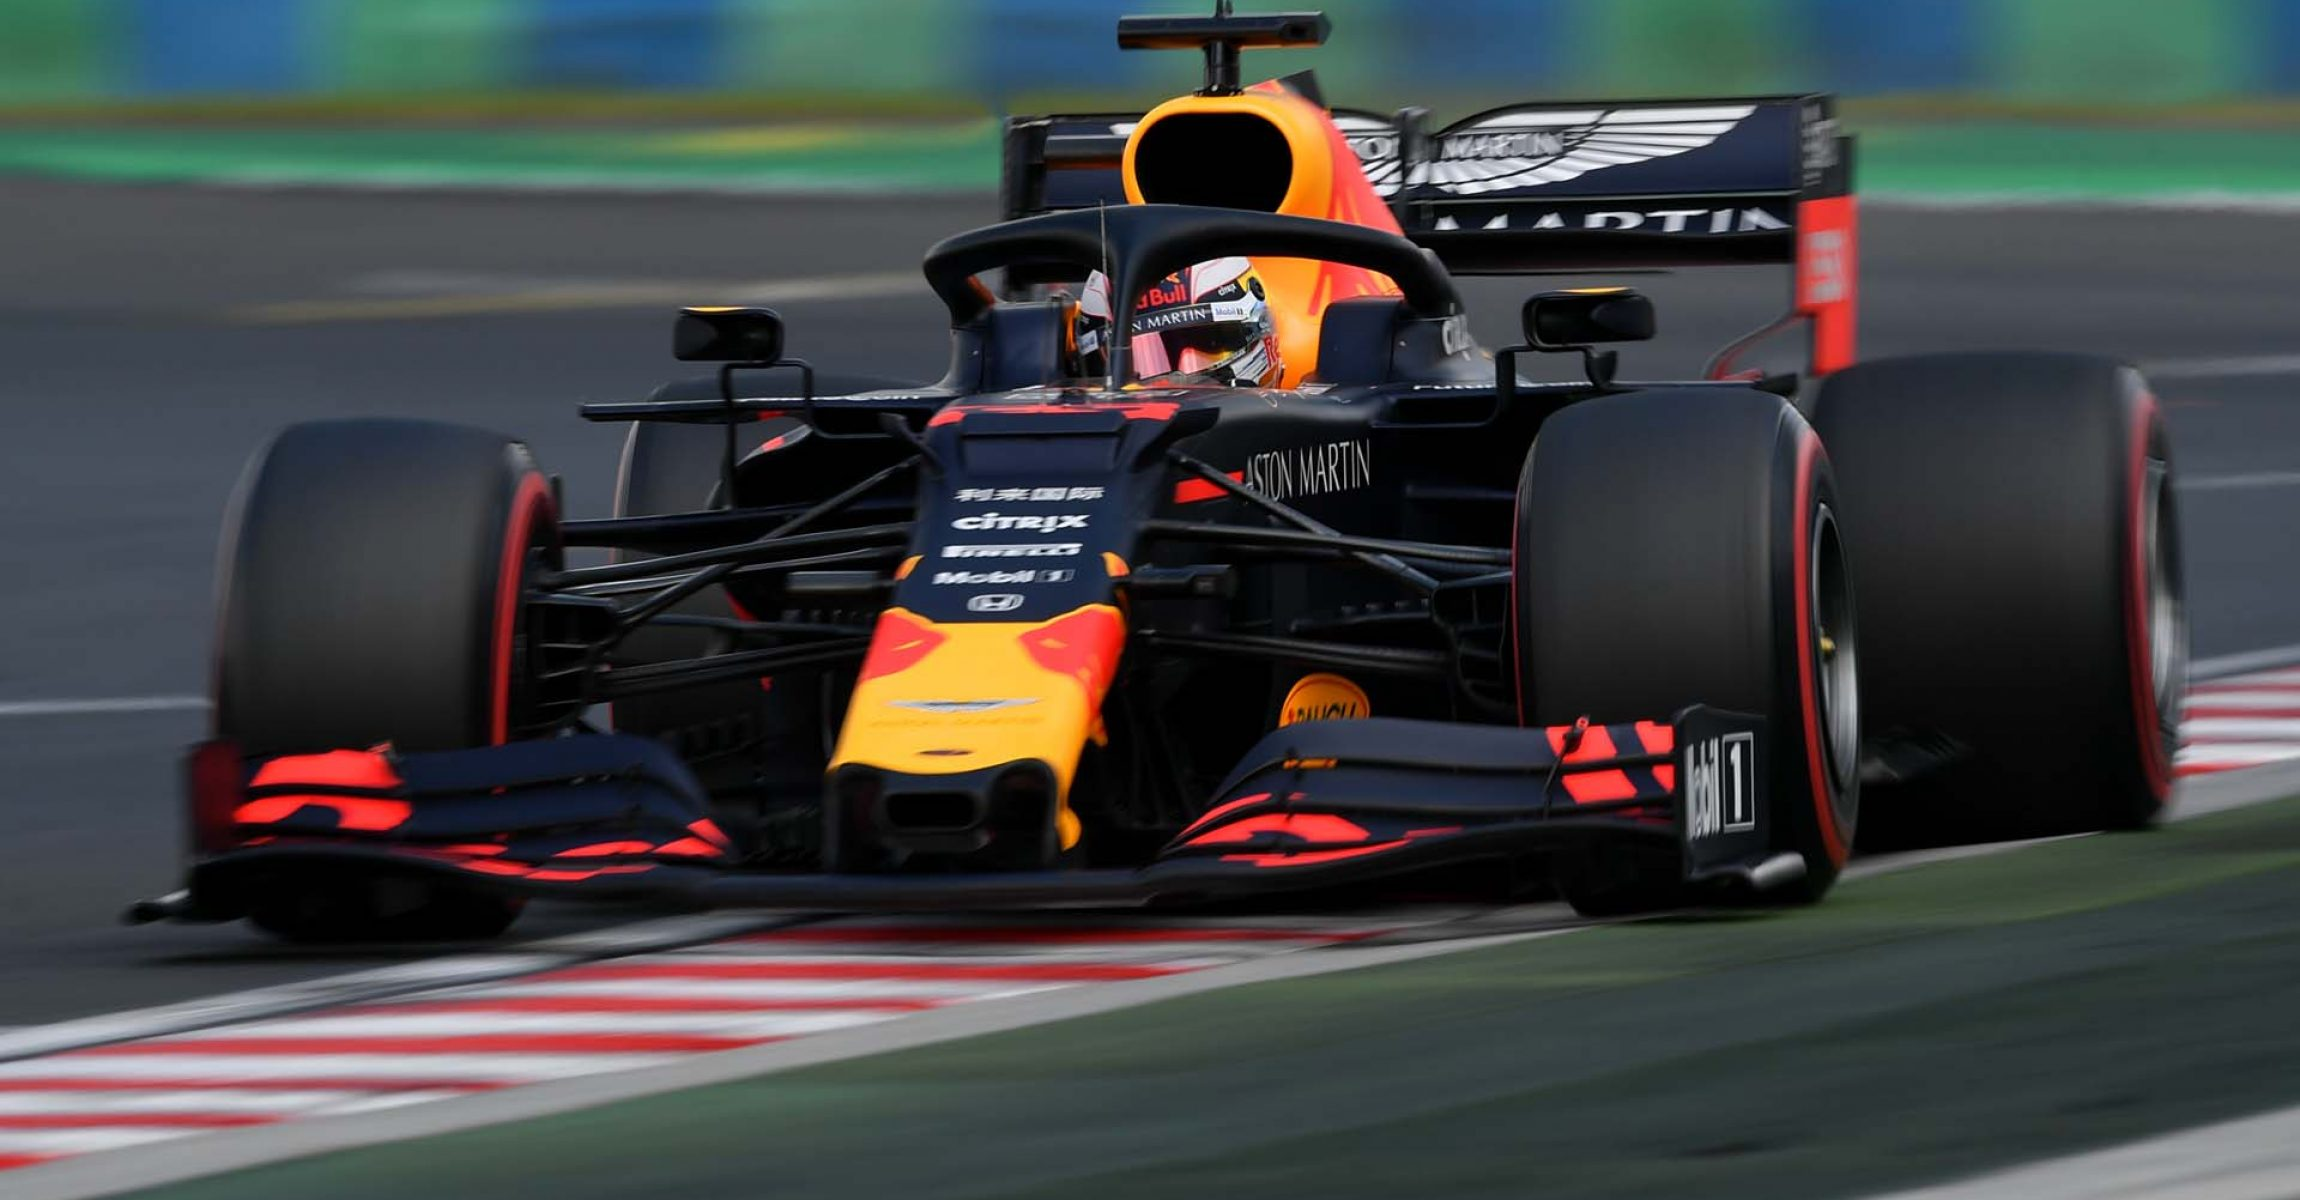 BUDAPEST, HUNGARY - AUGUST 03: Max Verstappen of the Netherlands driving the (33) Aston Martin Red Bull Racing RB15 on track during qualifying for the F1 Grand Prix of Hungary at Hungaroring on August 03, 2019 in Budapest, Hungary. (Photo by Dan Mullan/Getty Images) // Getty Images / Red Bull Content Pool  // AP-2157RVB8W2111 // Usage for editorial use only // Please go to www.redbullcontentpool.com for further information. //